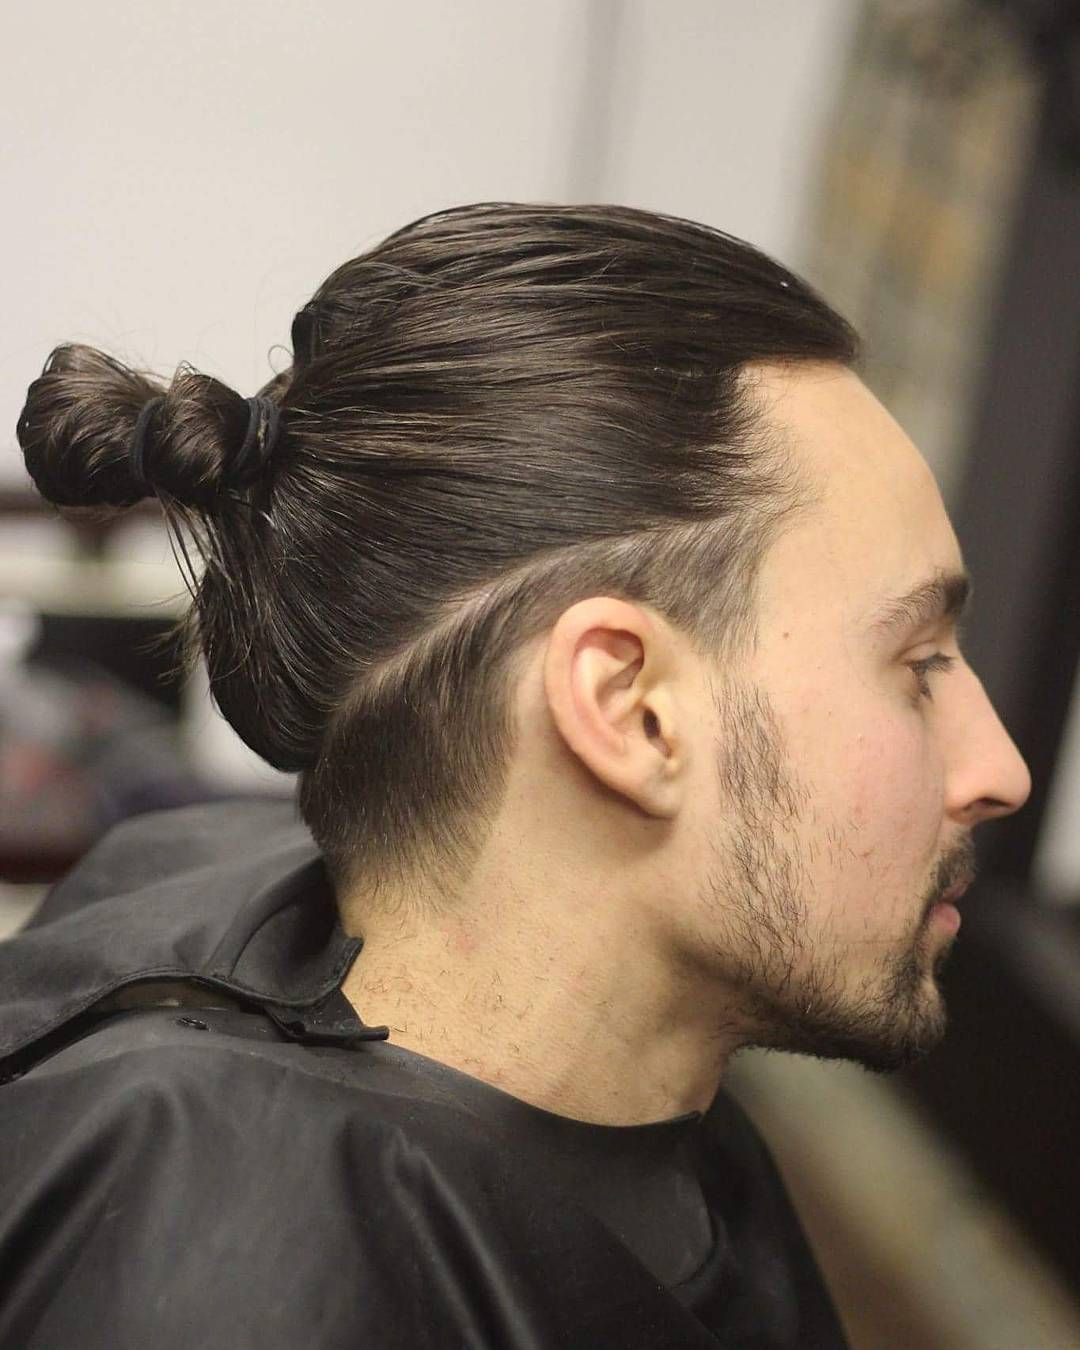 Long Hair Ideas For Men Mens Hair Care And Styles Hair Long